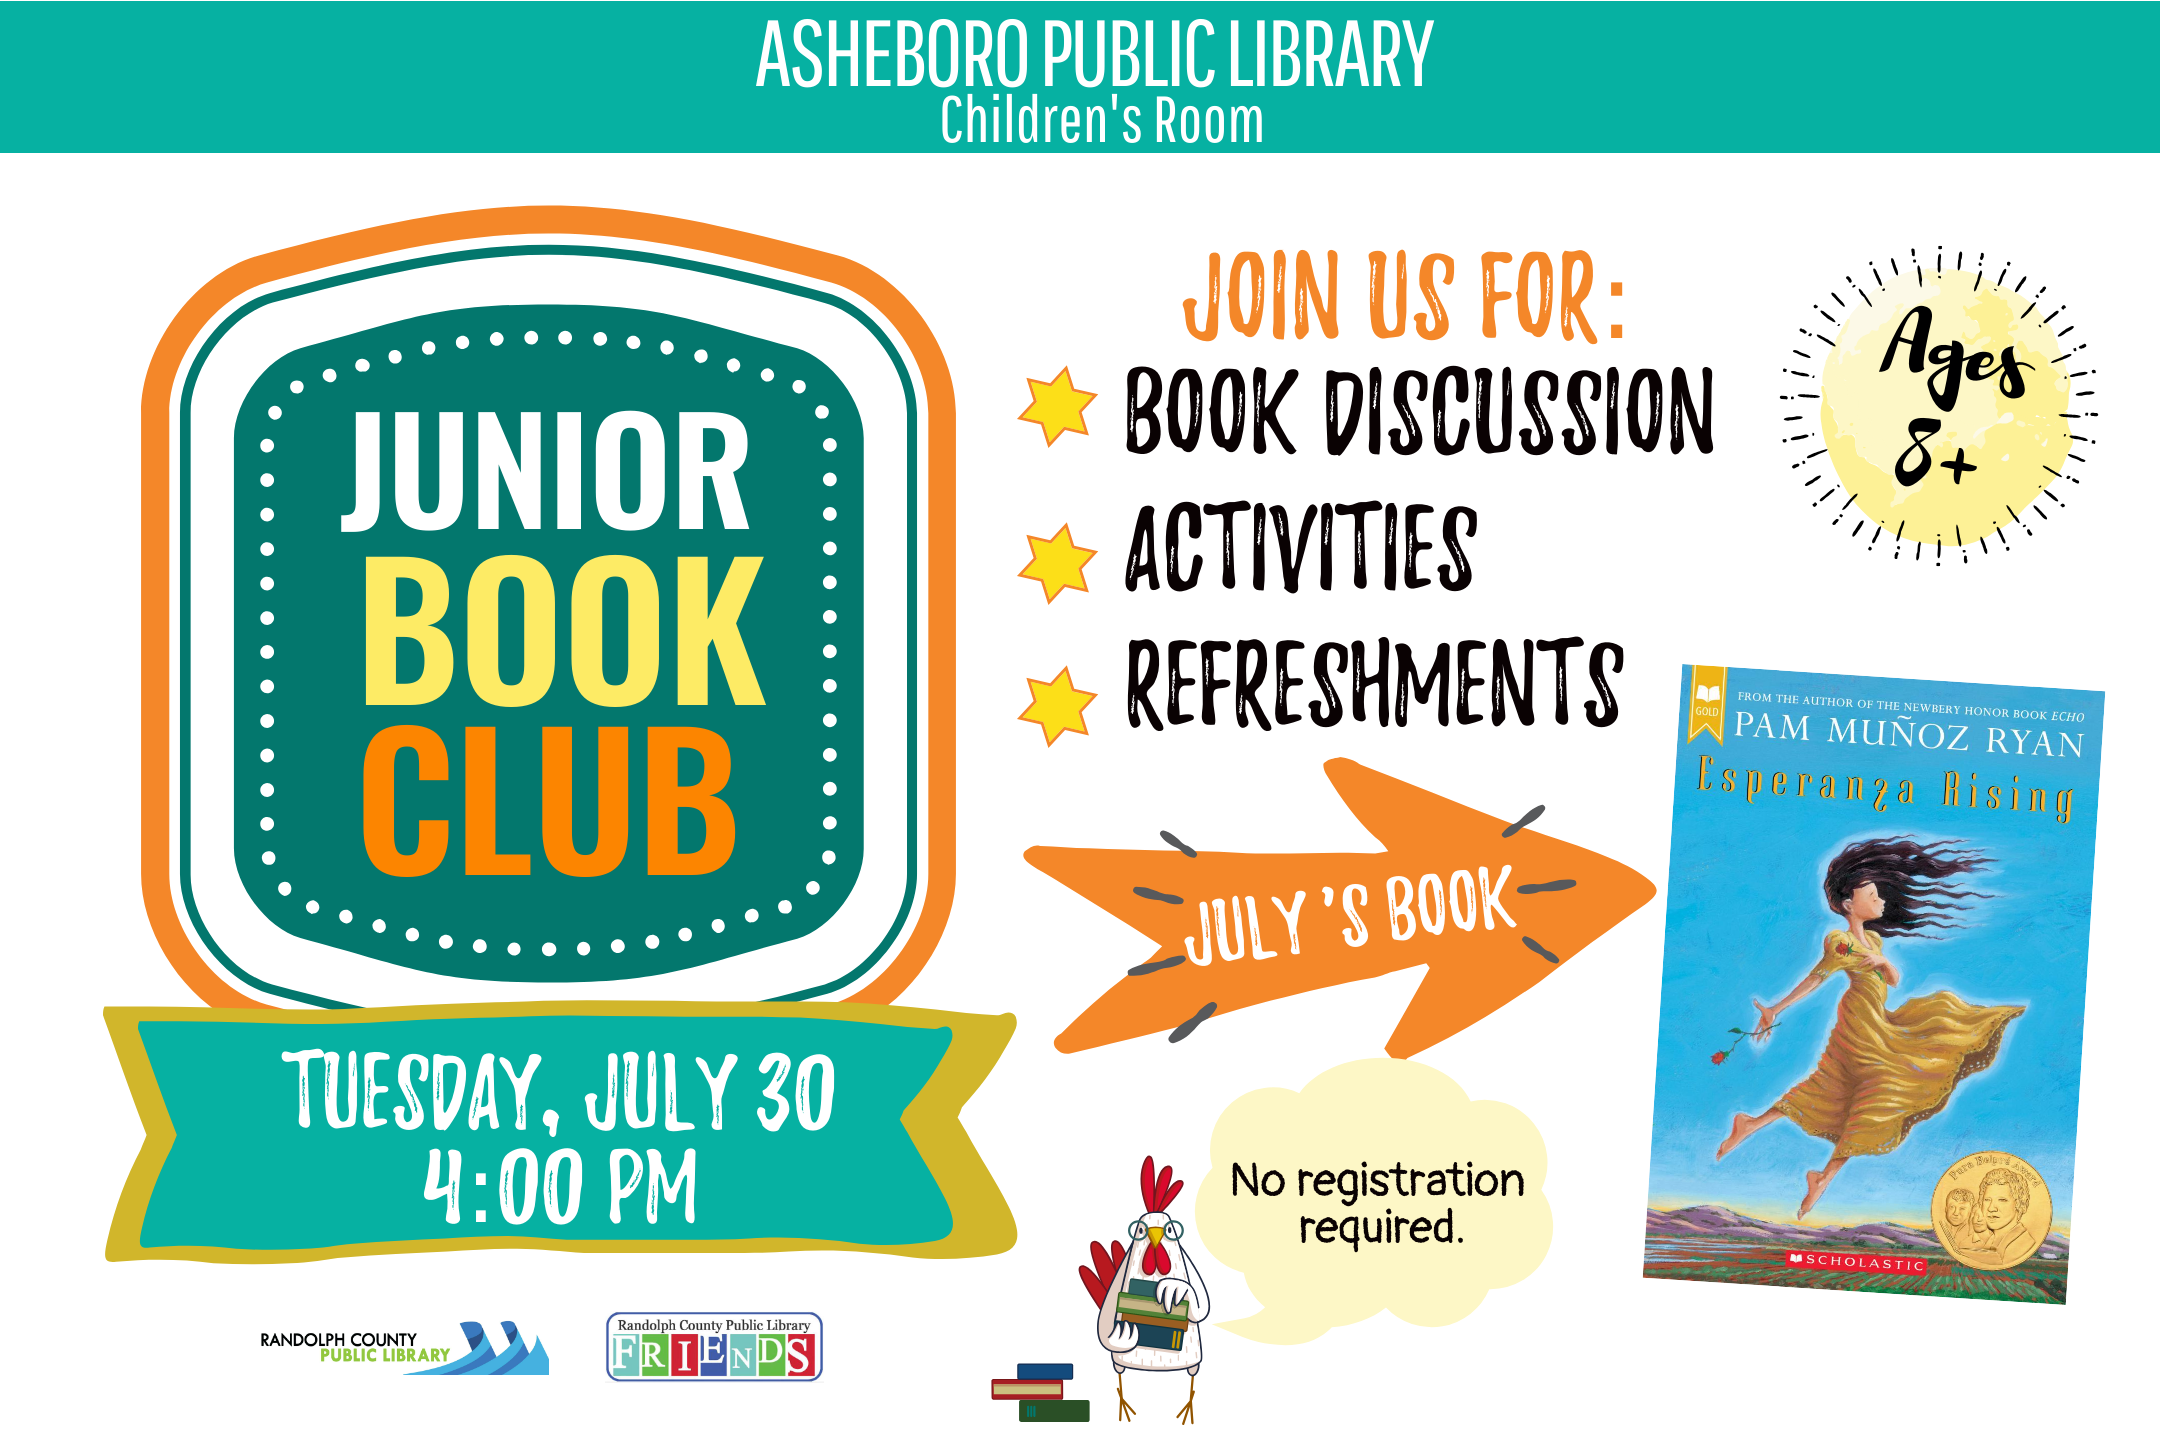 Activities at the Asheboro Public Library in July, 2019! FREE